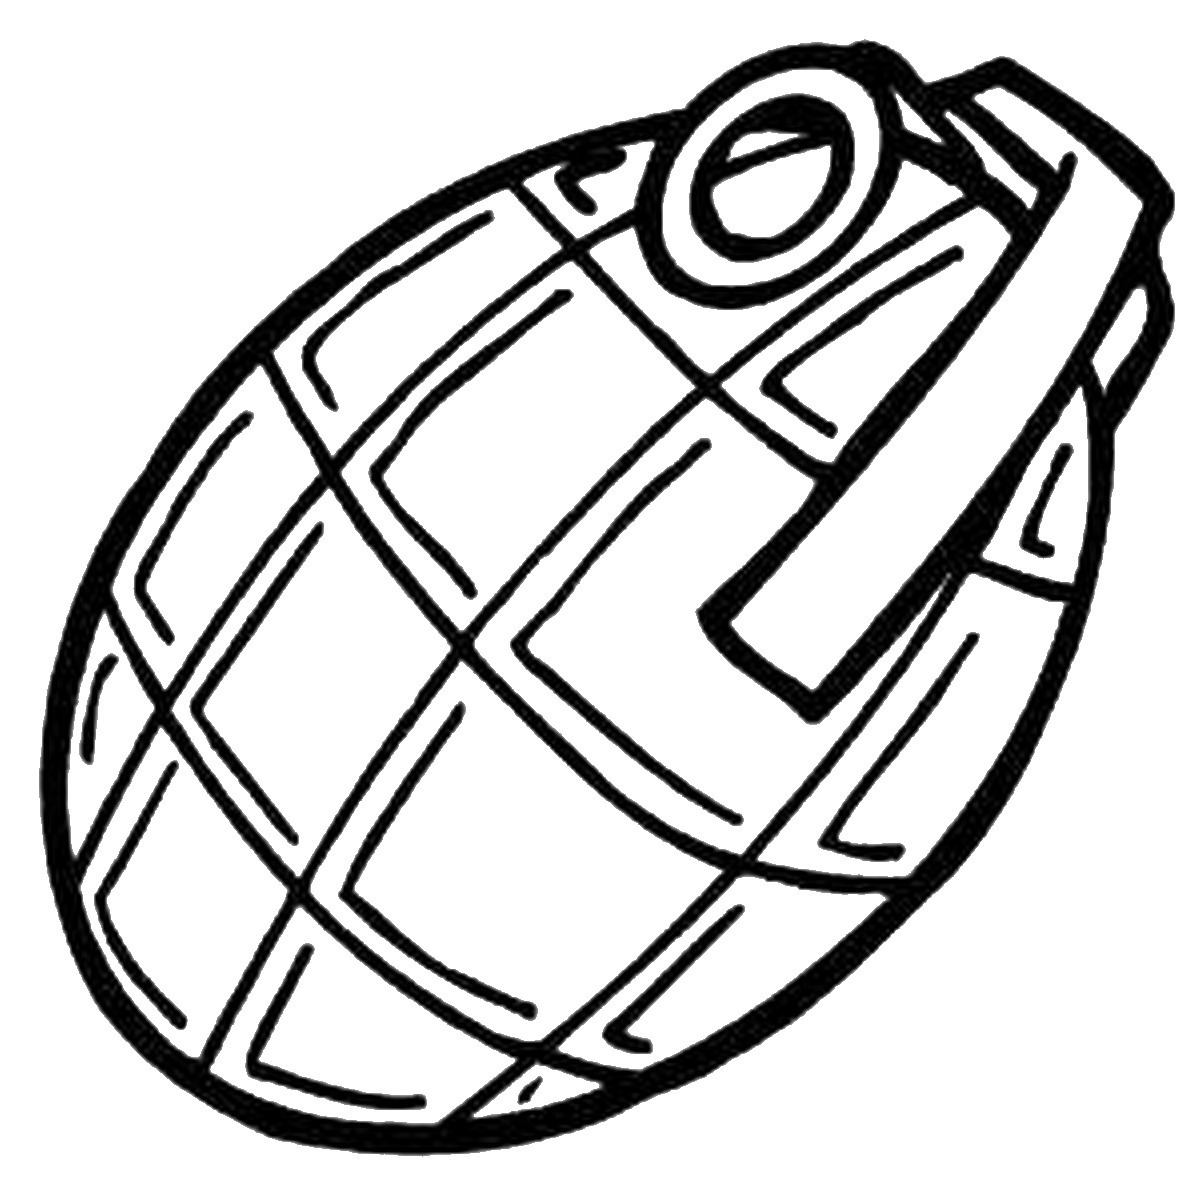 army logo coloring pages army clipart coloring pages and other free printable army logo coloring pages